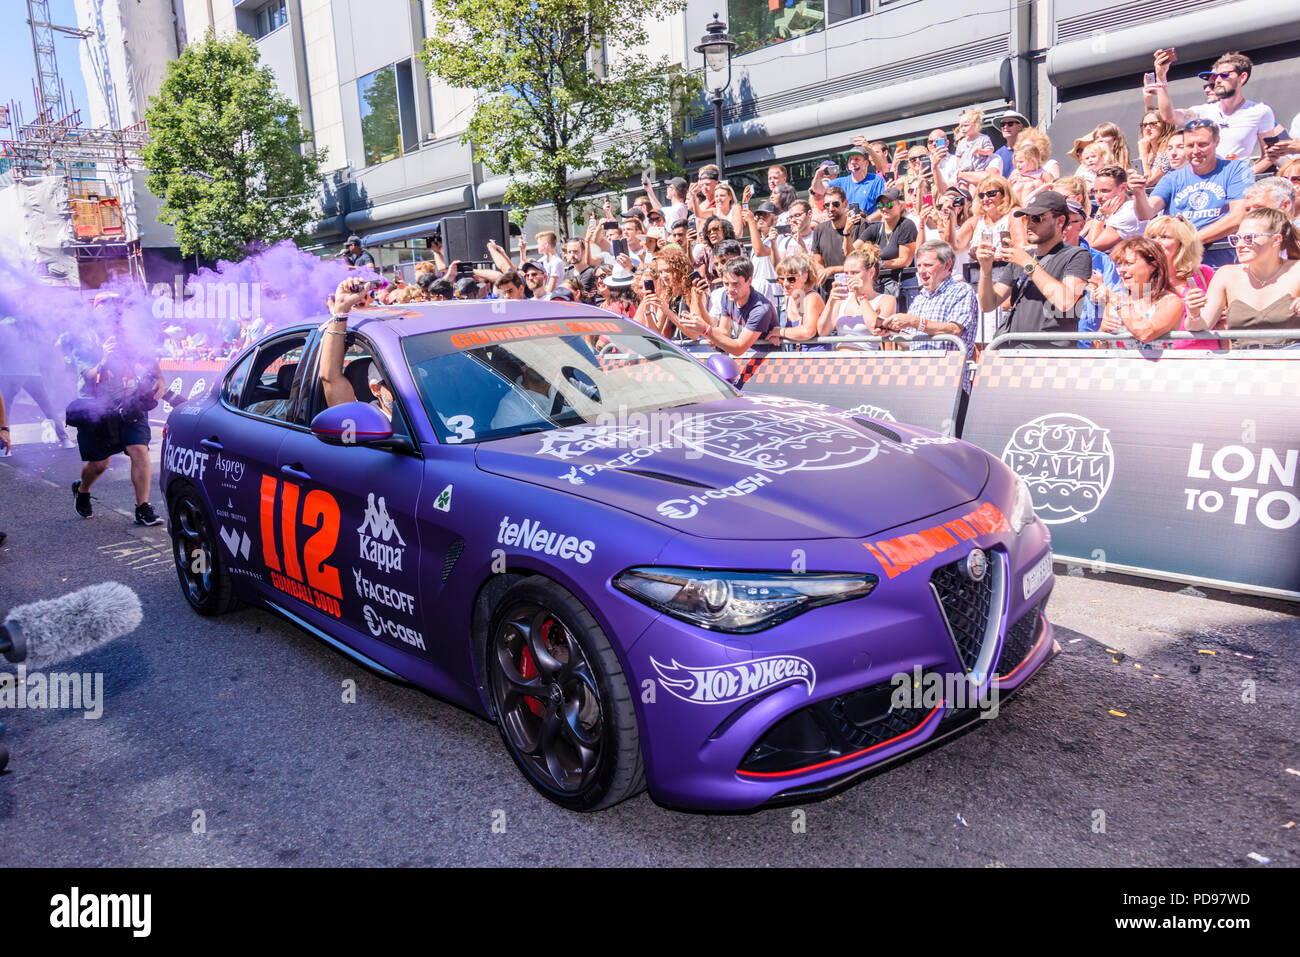 Covent Garden, London, UK.  05/08/2018.  Purple Alfa Romeo Guila leaves at the start of the 2018 Gumballl 3000 rally. - Stock Image